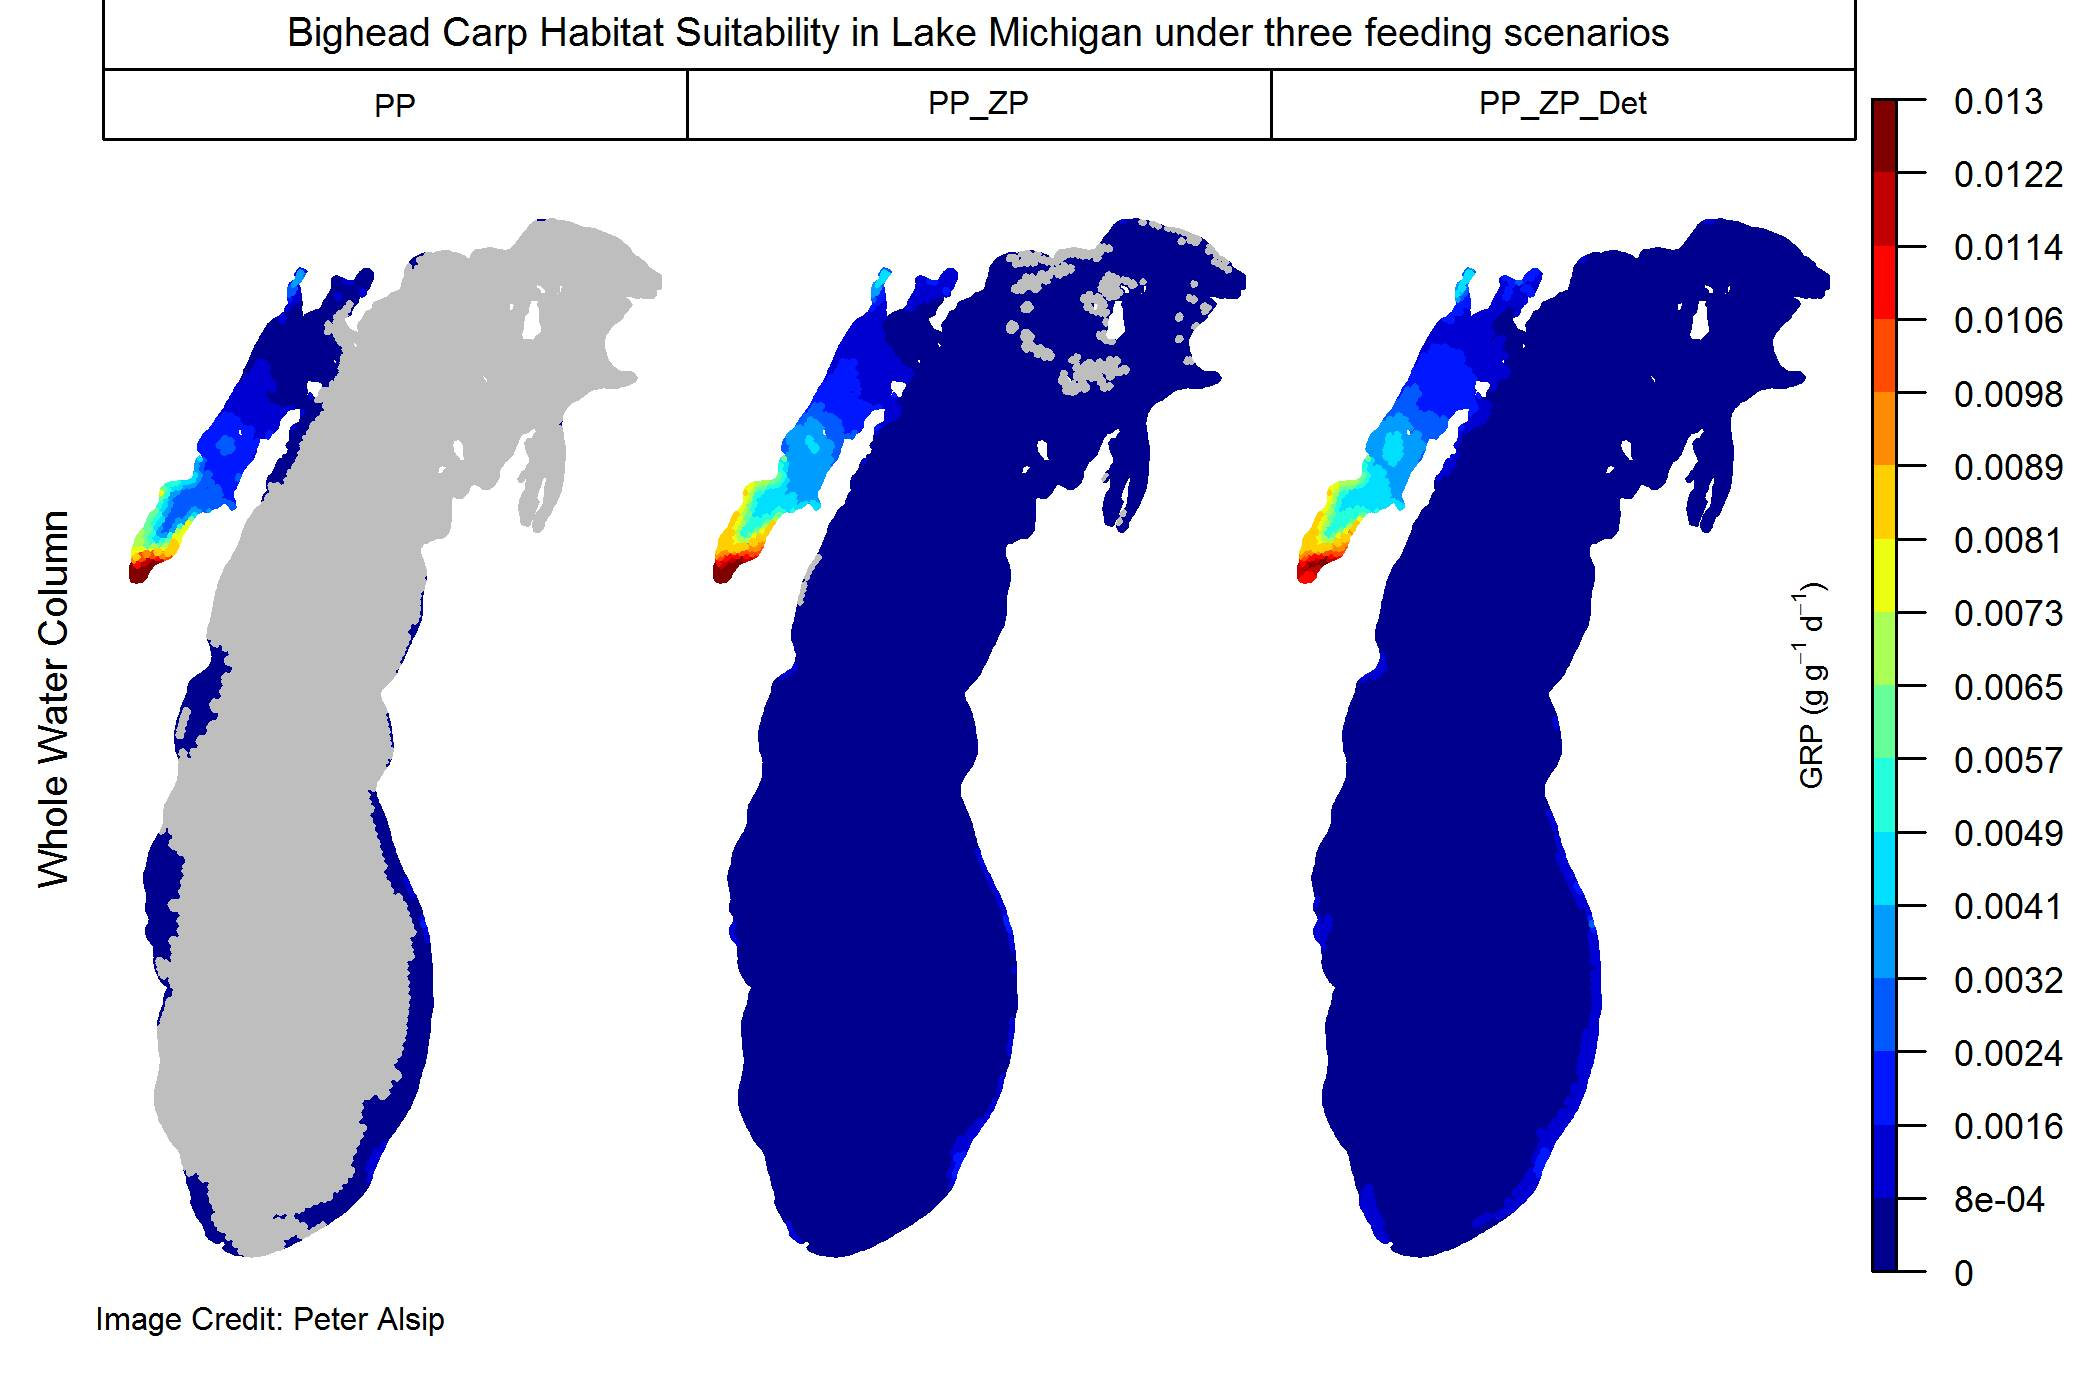 Habitat suitability maps for bighead carp in Lake Michigan under three feeding scenarios. The University of Michigan-led modeling study shows that when bighead carp are allowed to feed throughout the water column on the broadest possible diet (phytoplankton, PP, zooplankton, ZP, and detritus, Det), the entire extent of Lake Michigan contains suitable bighead carp habitat somewhere in the water column, at certain times of year.